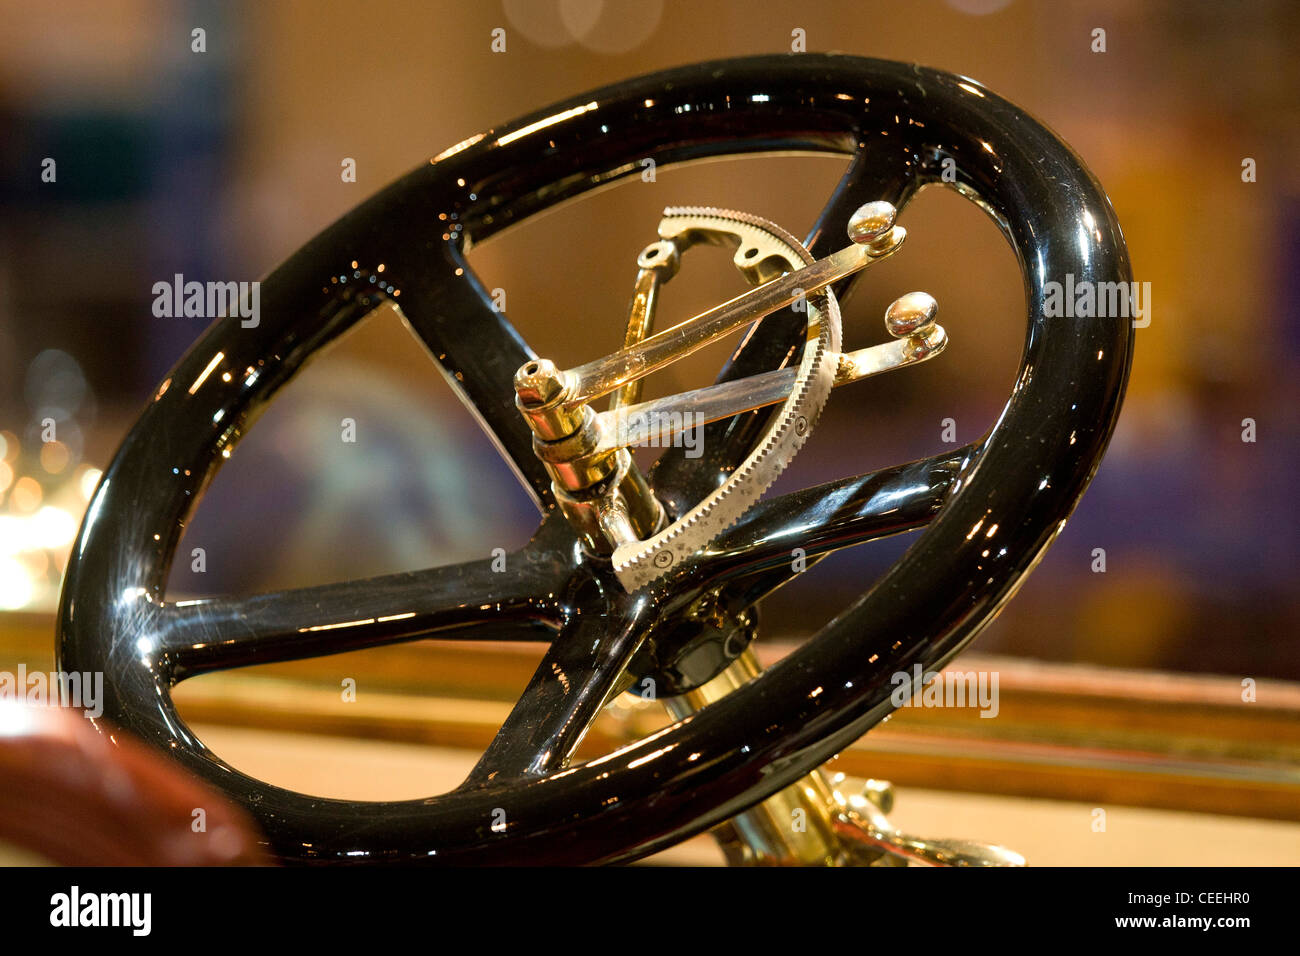 Classic car steering wheel pictured at the Classic Car Show held at the NEC, Birmingham. - Stock Image